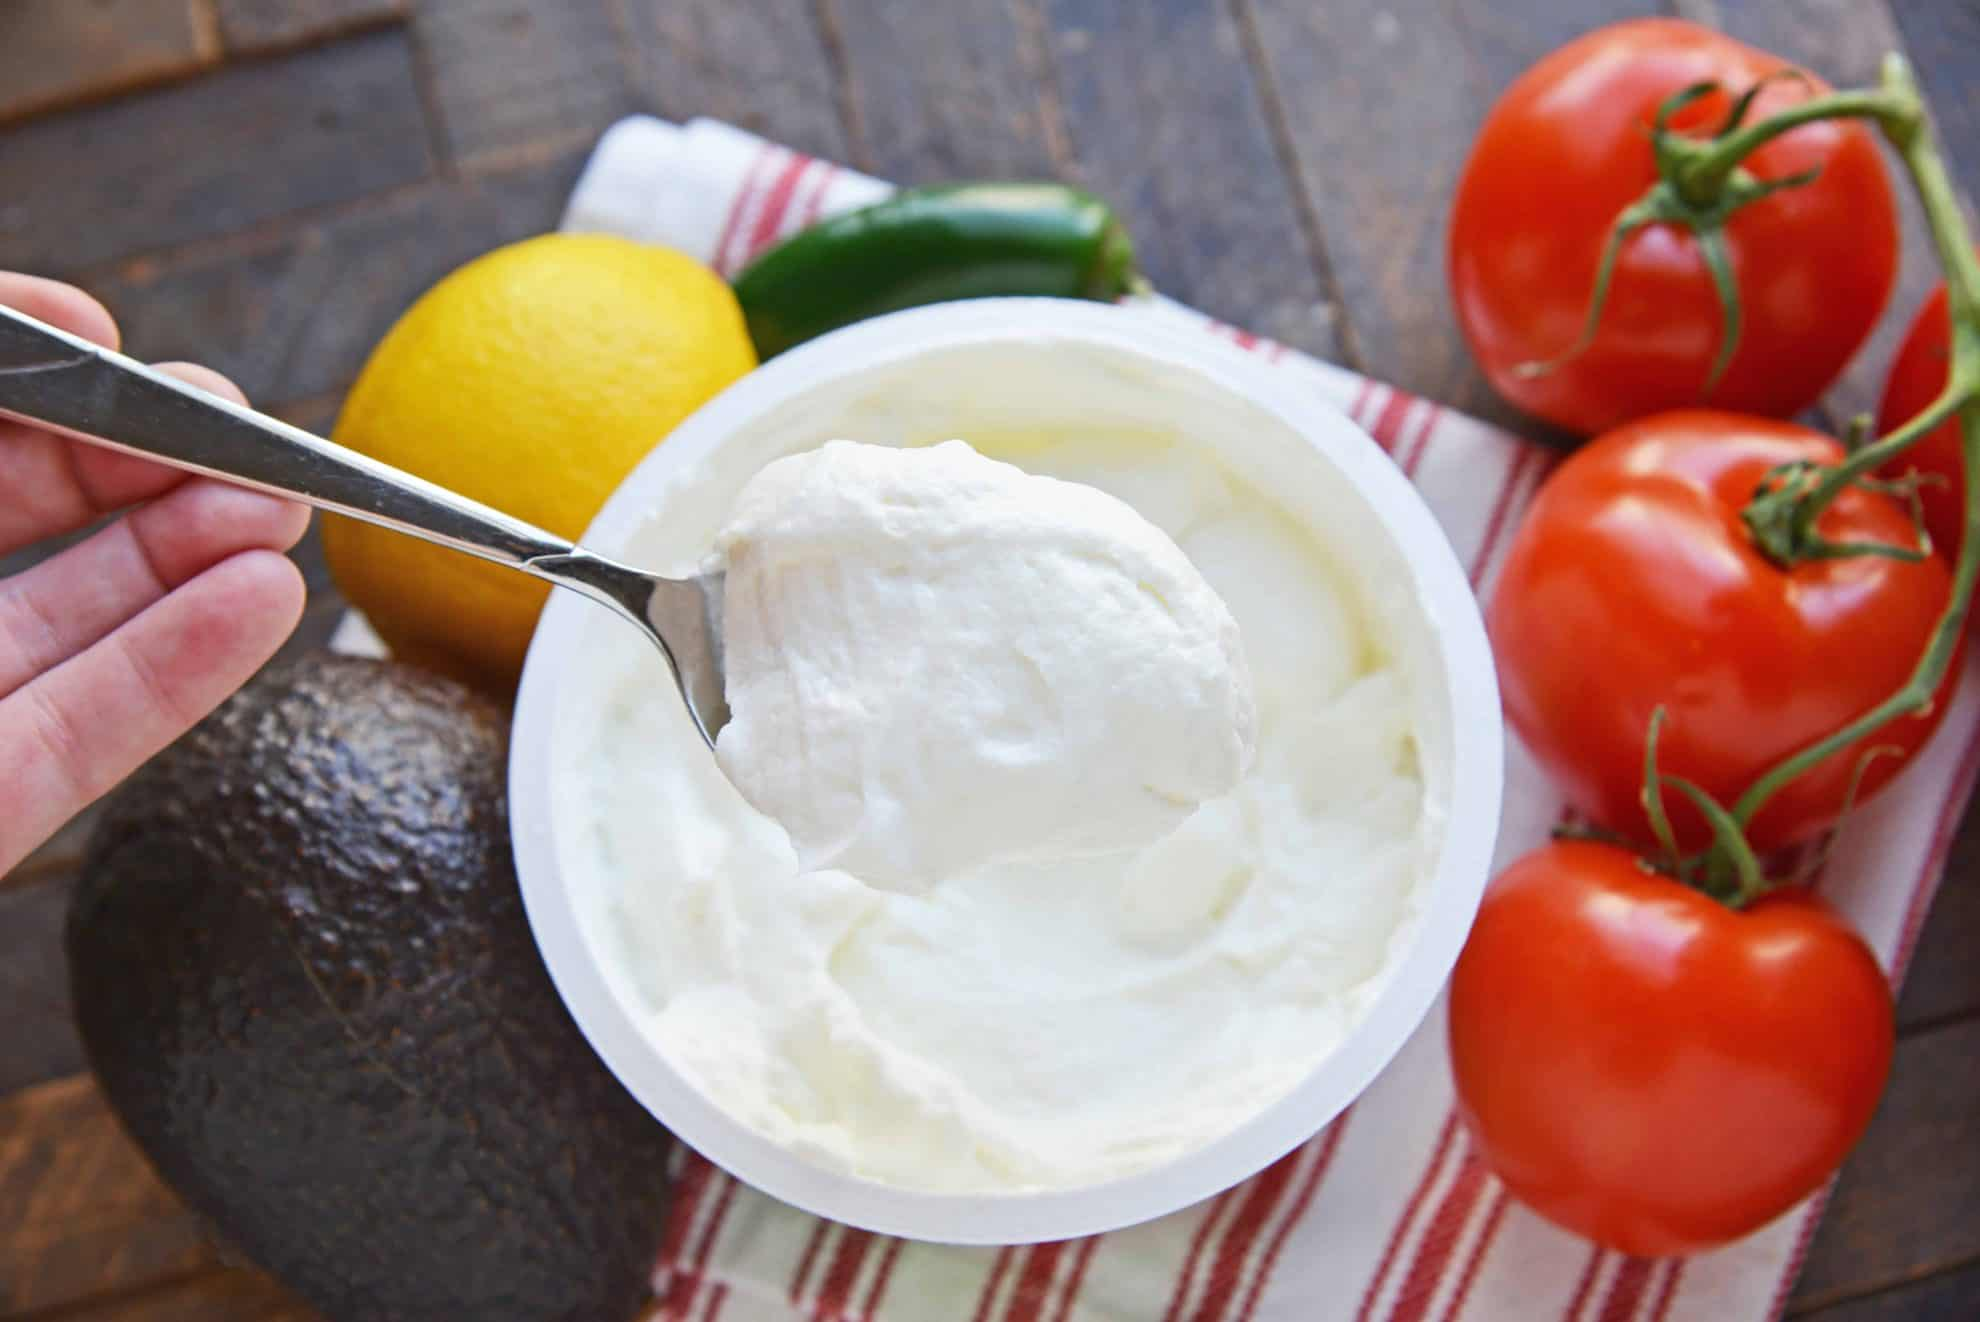 Spoonful of plain yogurt surrounded by fresh vegetables